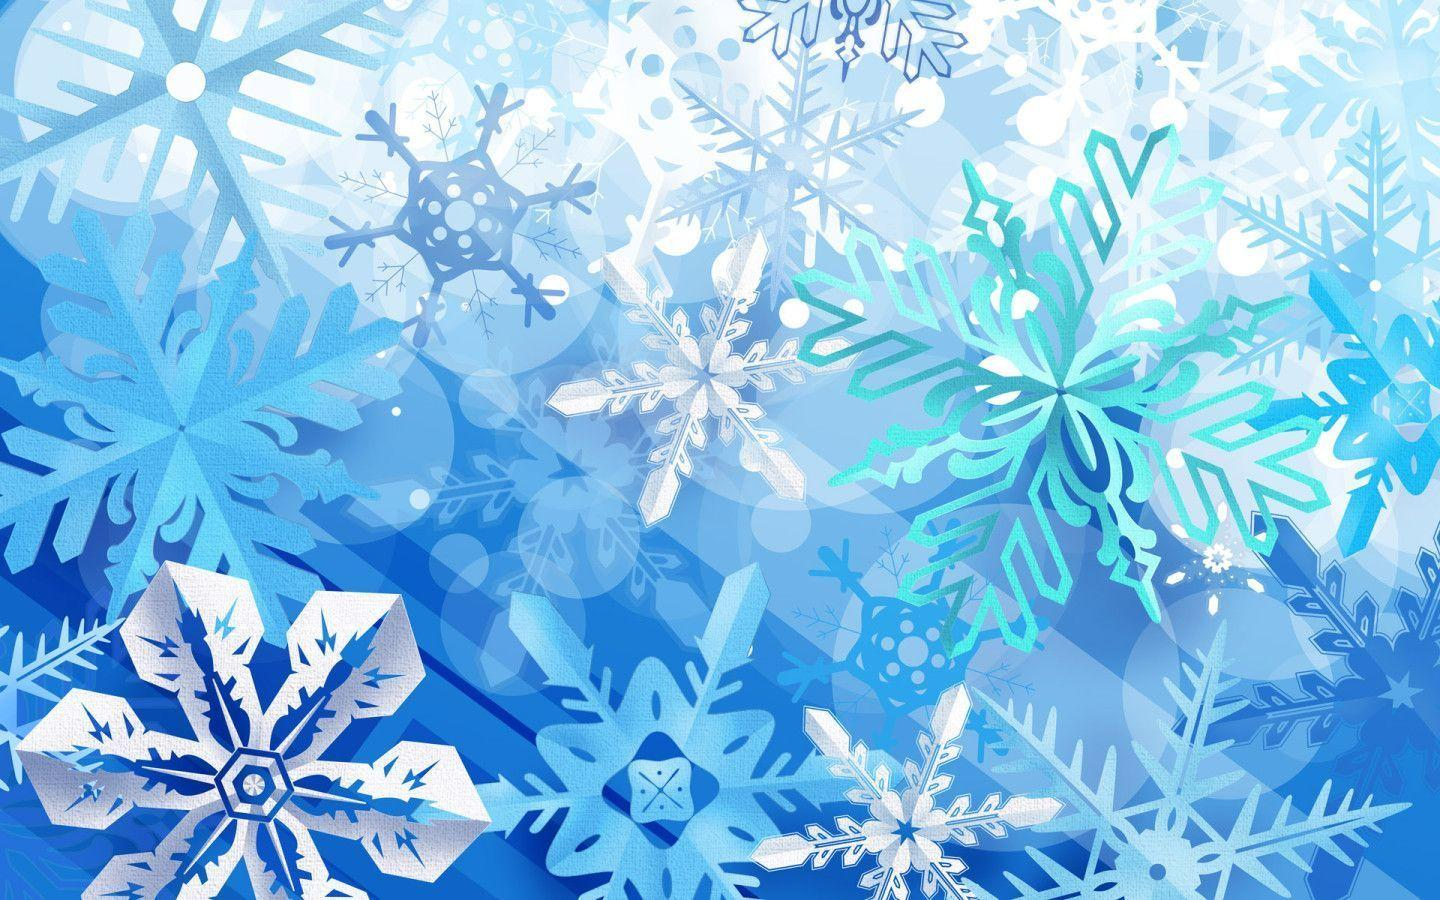 Winter Backgrounds download 1440x900